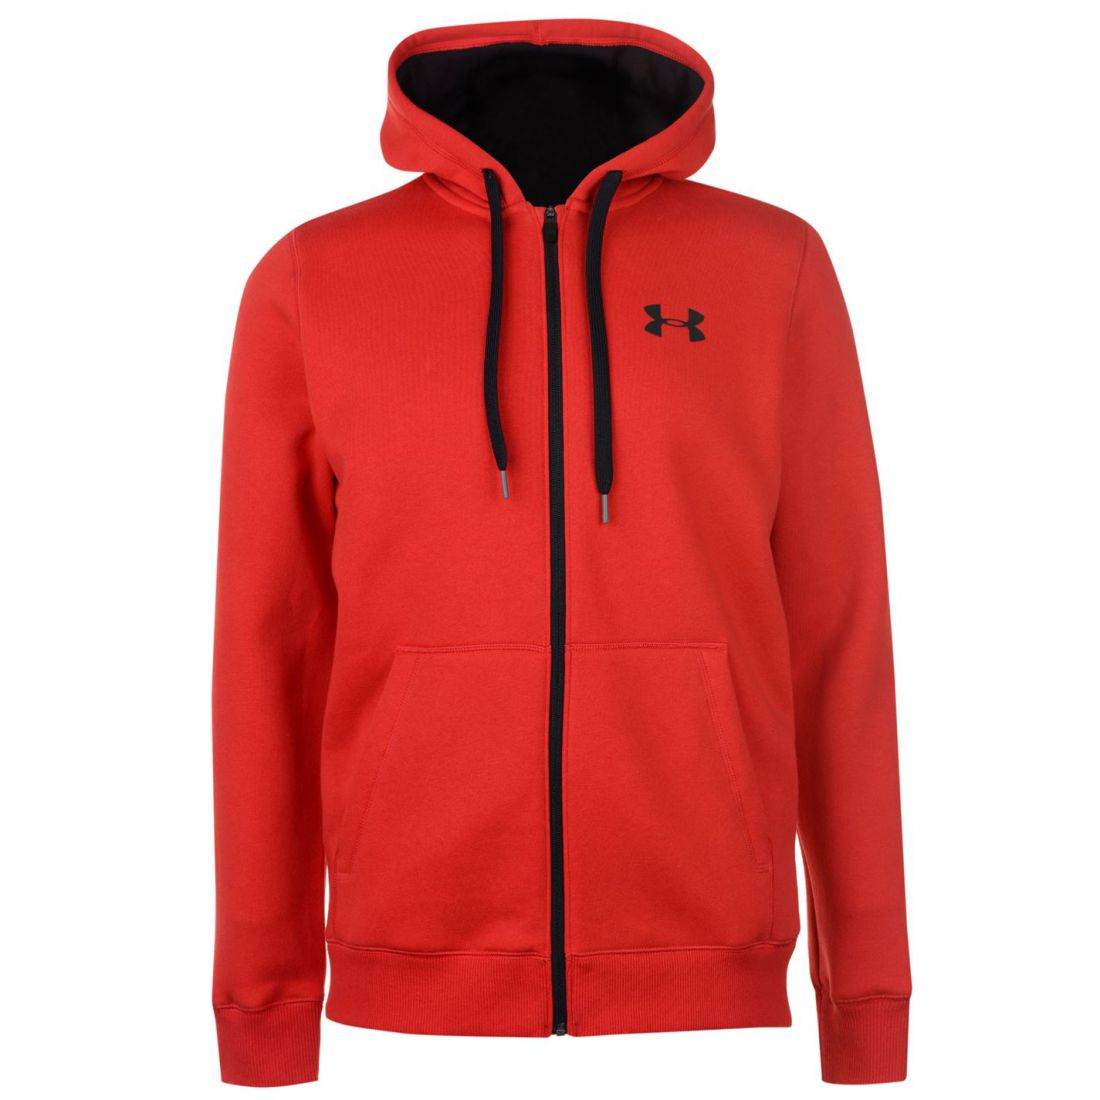 Under-Armour-Mens-Rival-Fitted-Full-Zip-Hoody-Hoodie-Hooded-Top-Breathable-Mesh thumbnail 10